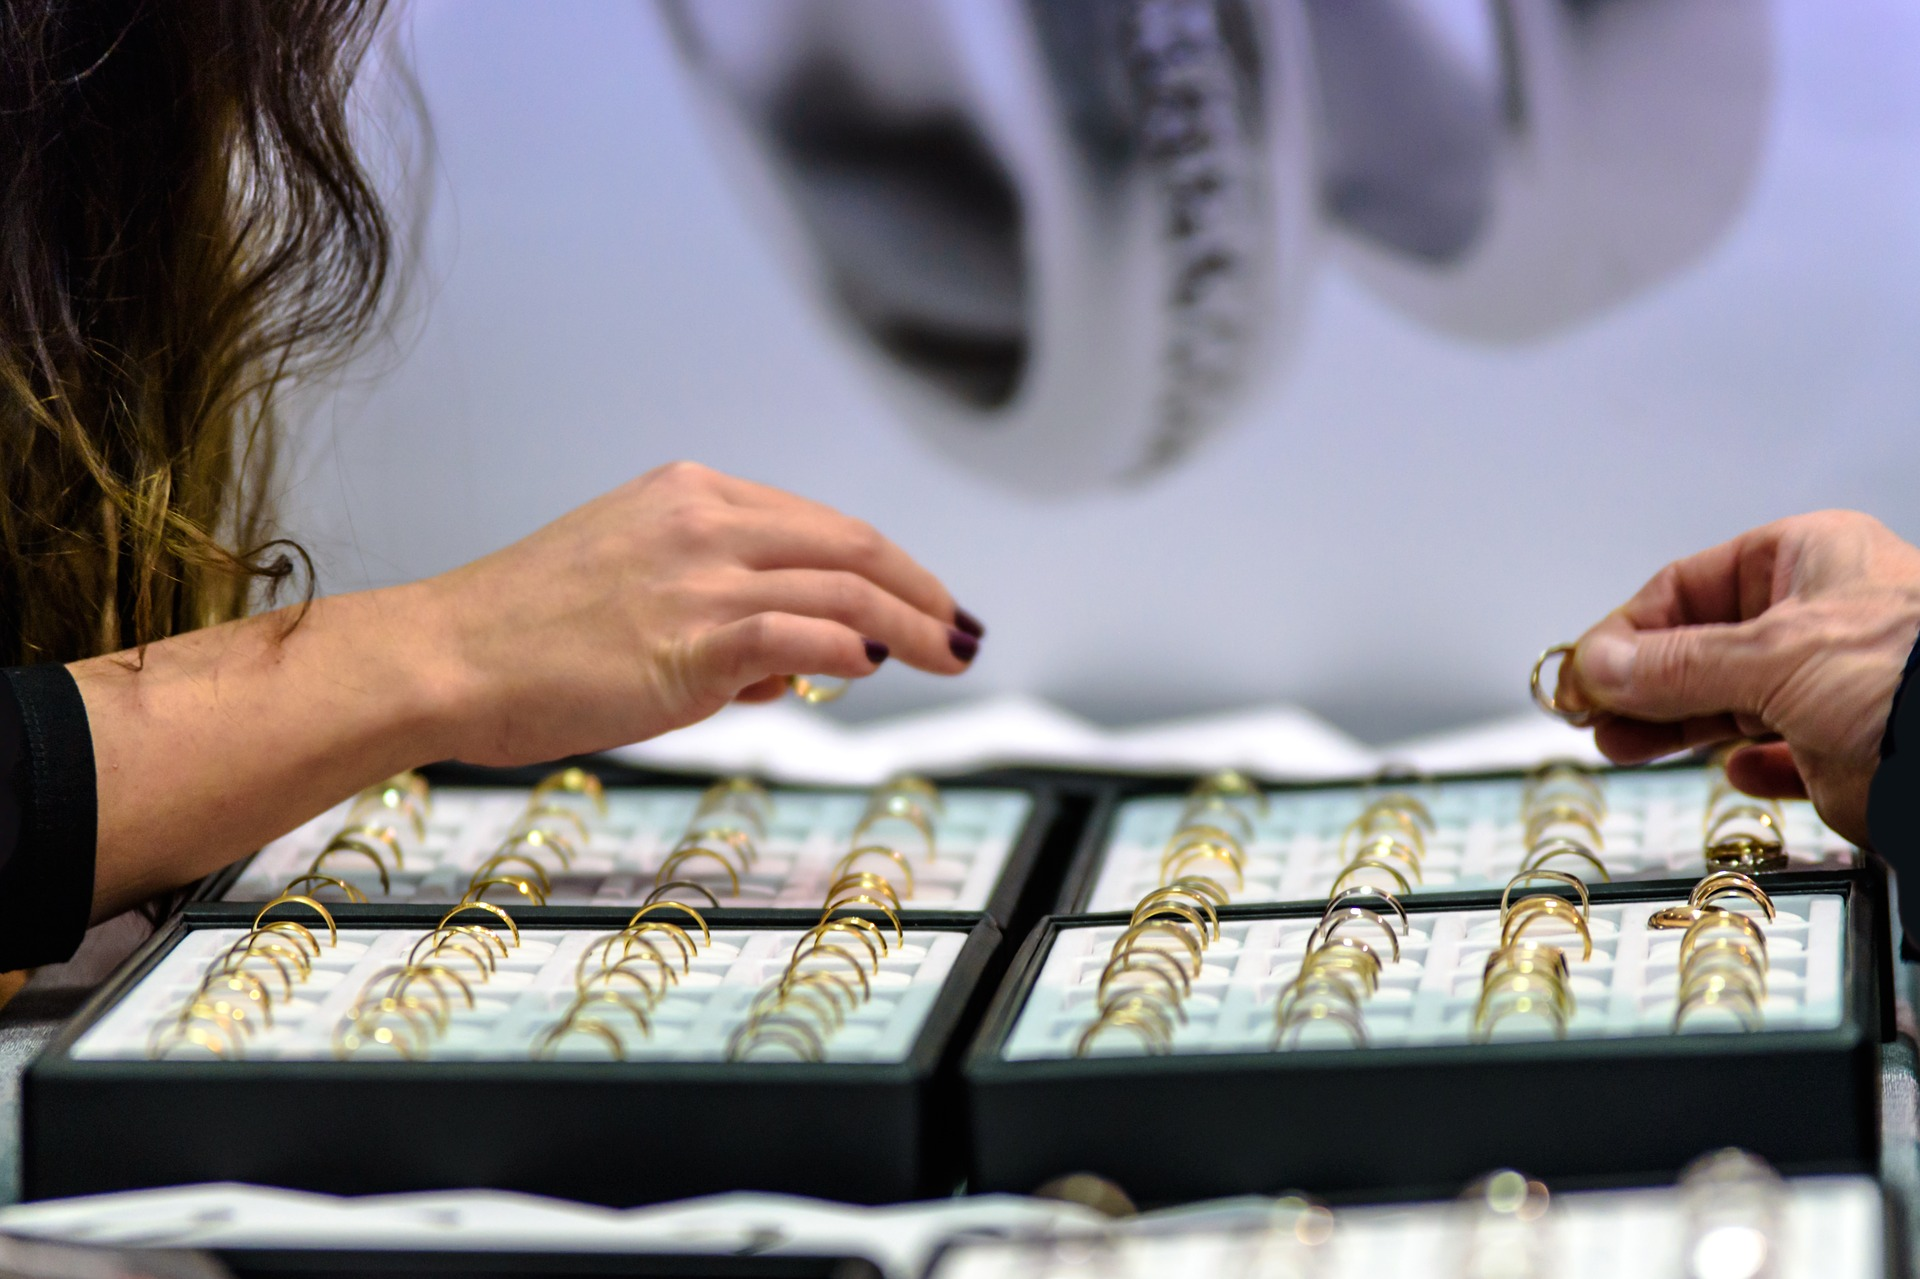 10k Gold Jewelry : Discover the pros and cons of buying it